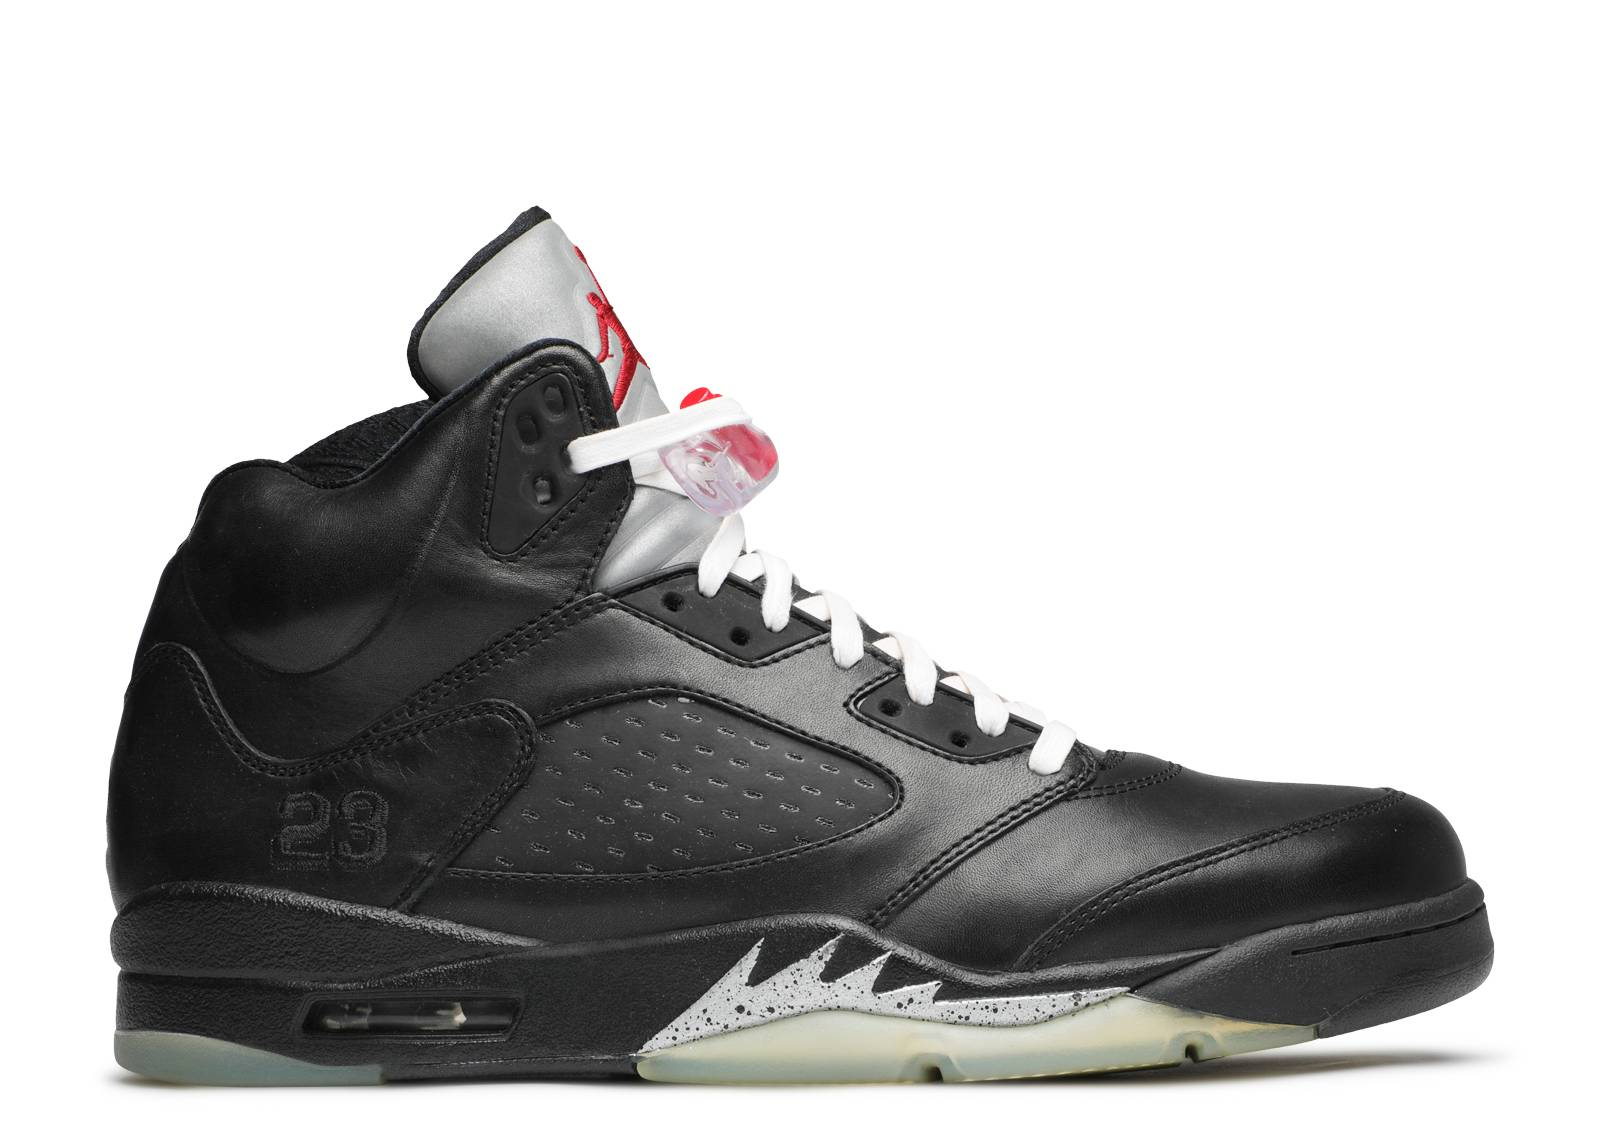 hot sale online 8b728 dd103 air jordan 5 retro premio